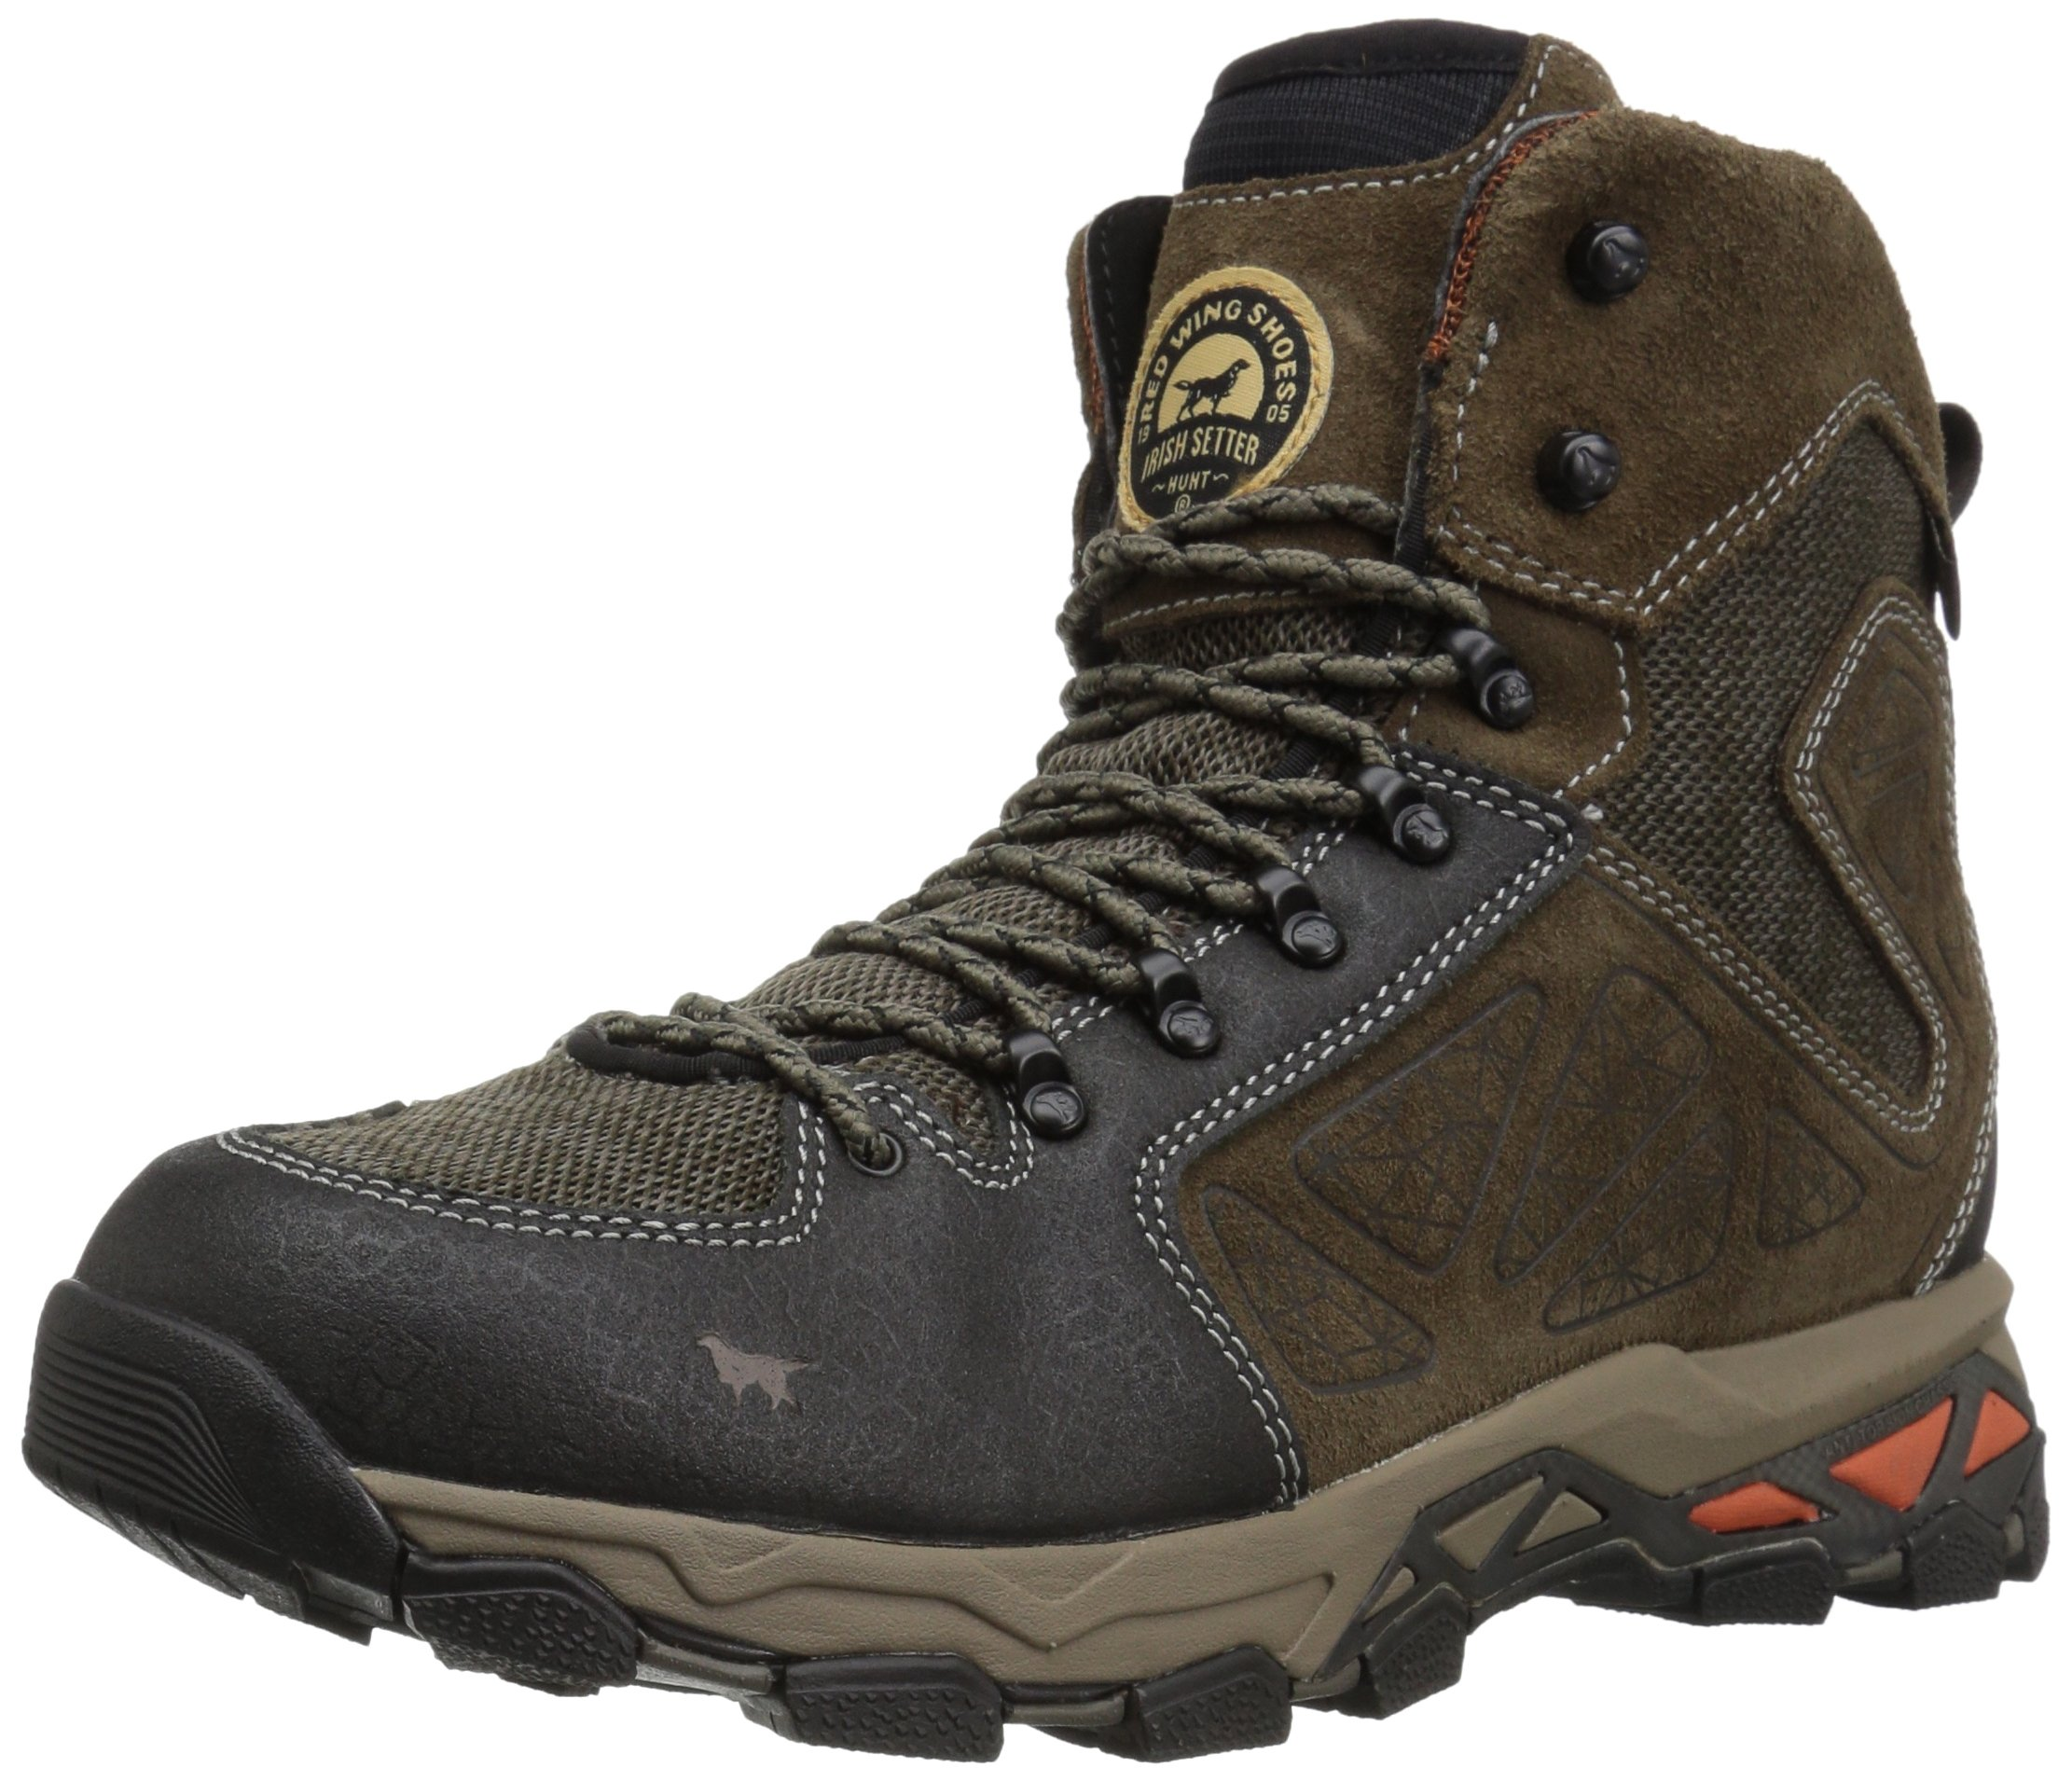 Irish Setter Men's Ravine-2880 Hunting Shoes, Gray/Black, 8.5 D US